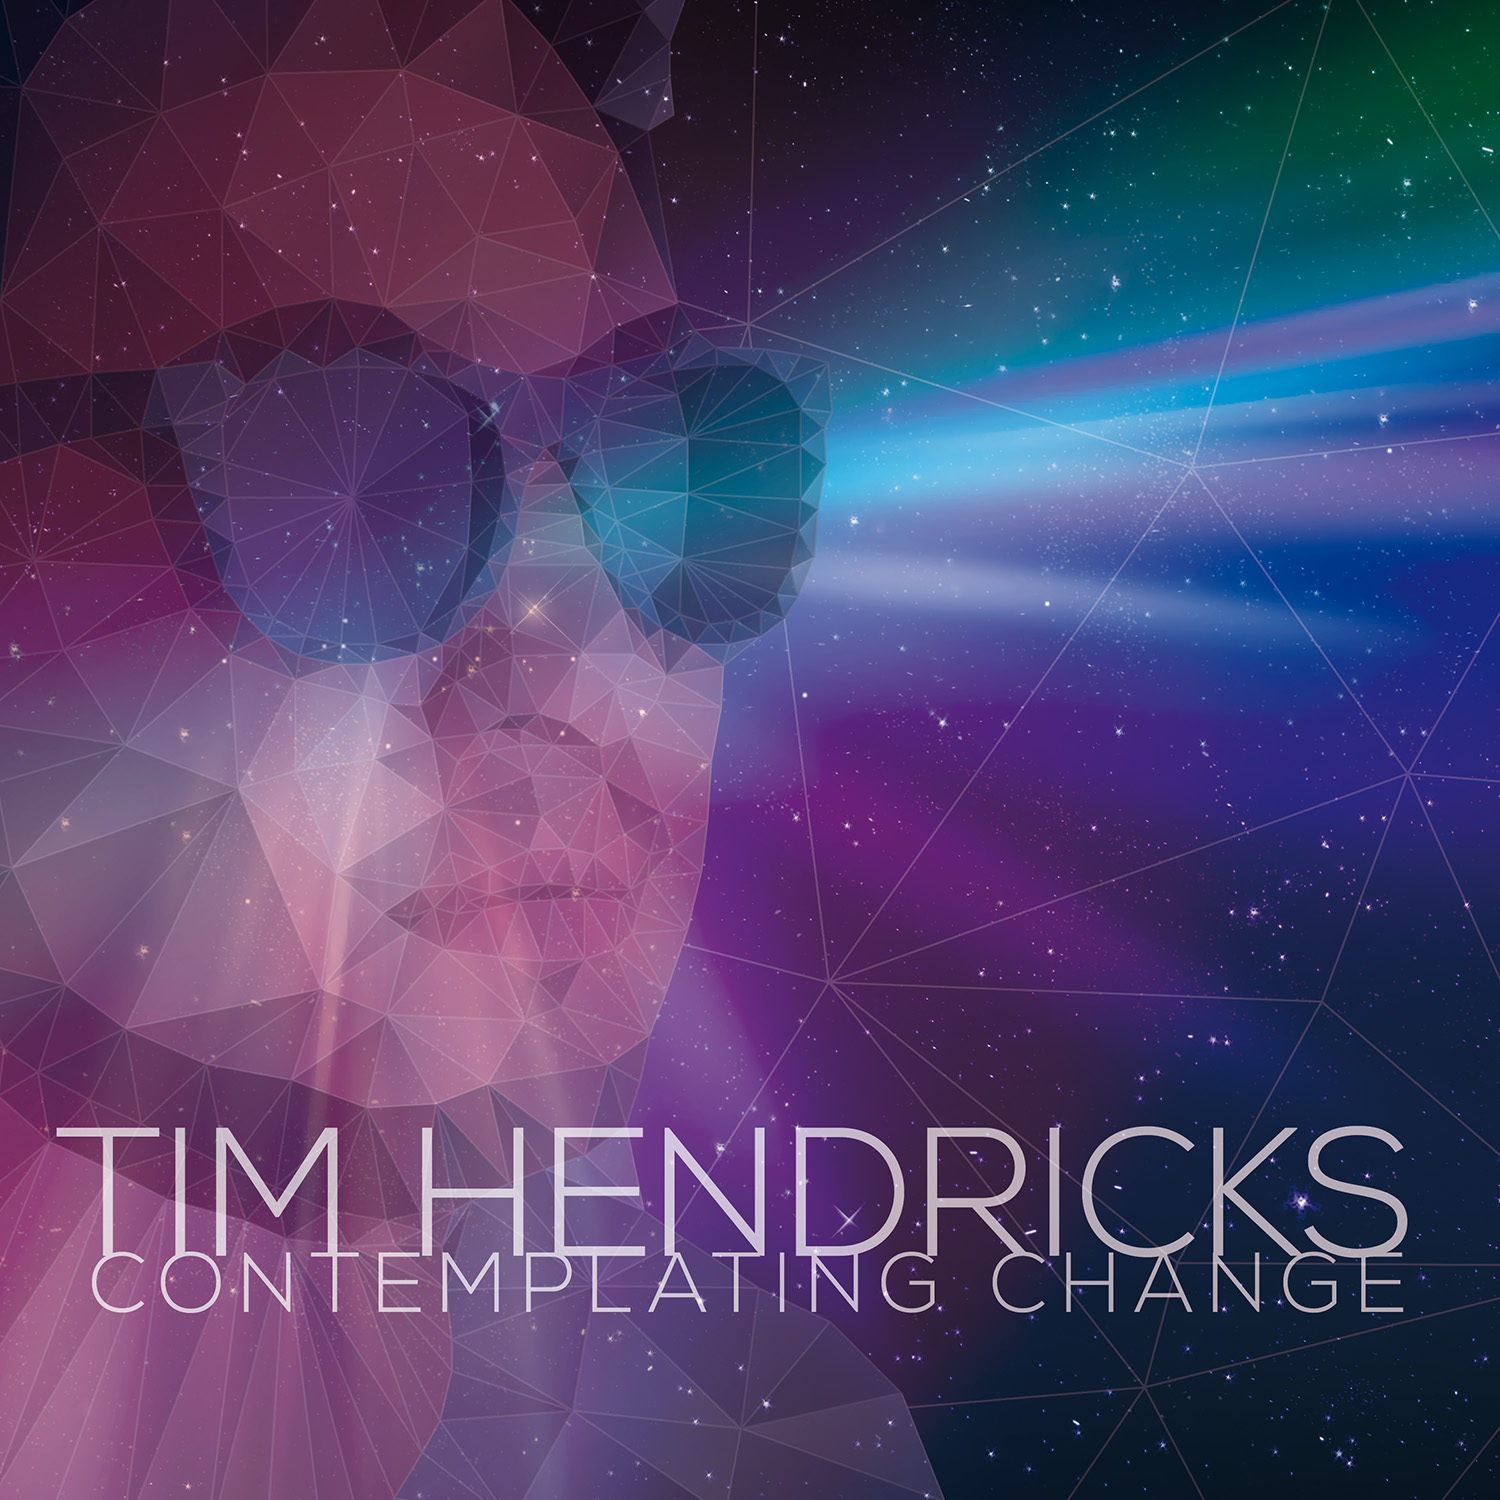 Tim Hendricks: Contemplating Change, genre, and limitations